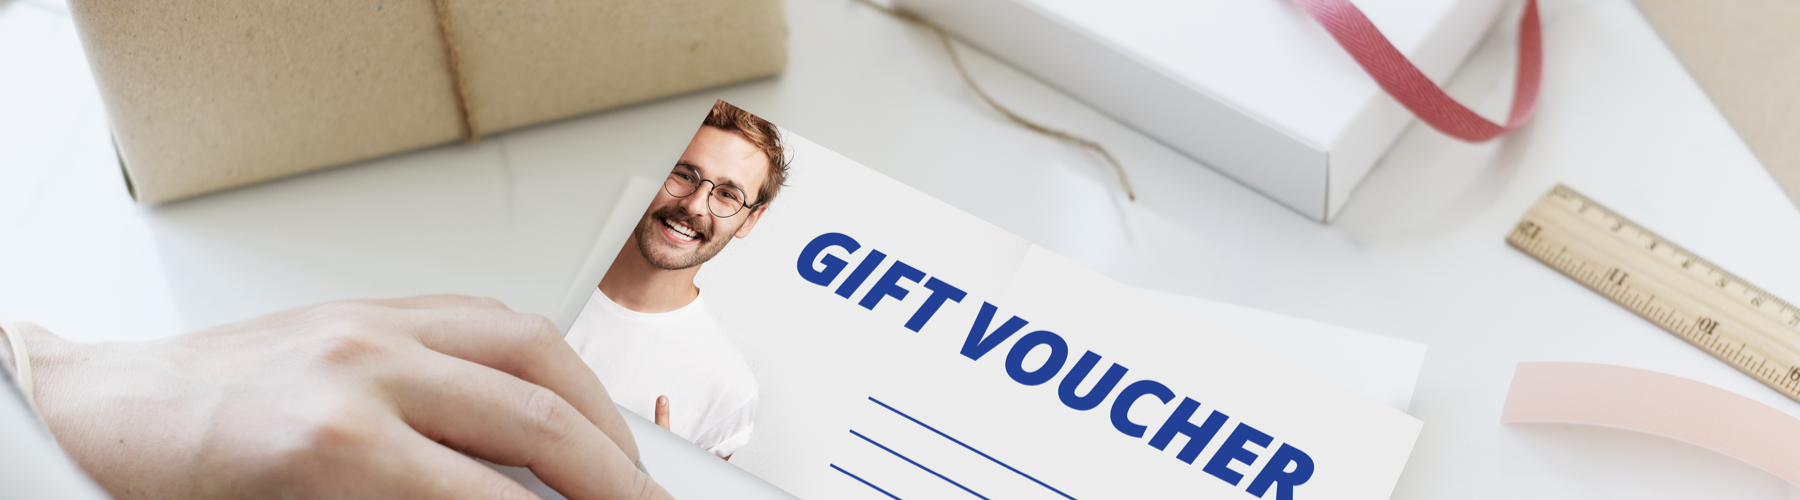 Why Gift Voucher Marketing Is Essential To Your Business